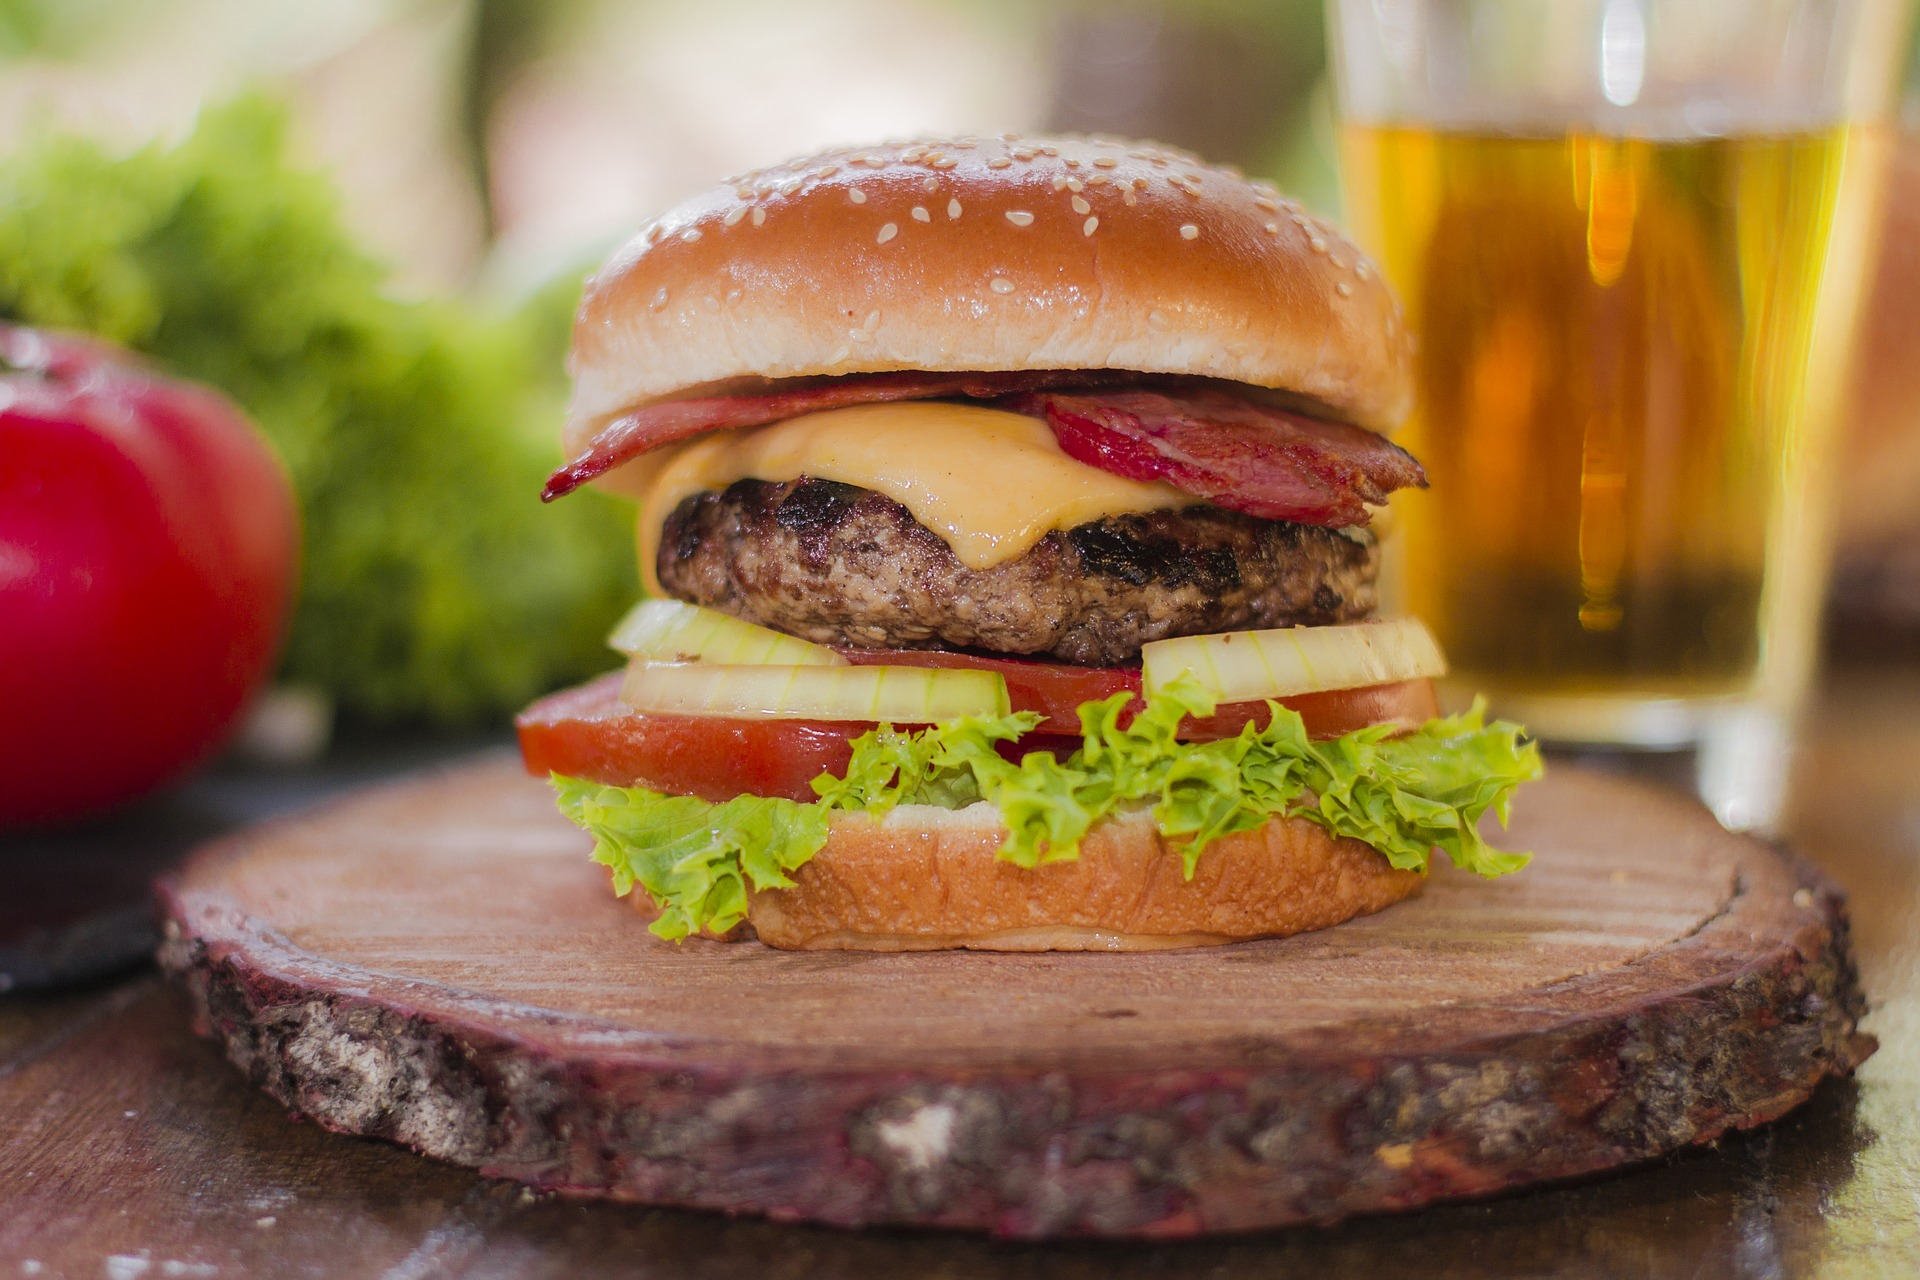 Exclusive Data on the Top 7 Food and Drink Advertisers, from McDonald's to Anheuser-Busch - Featured Image